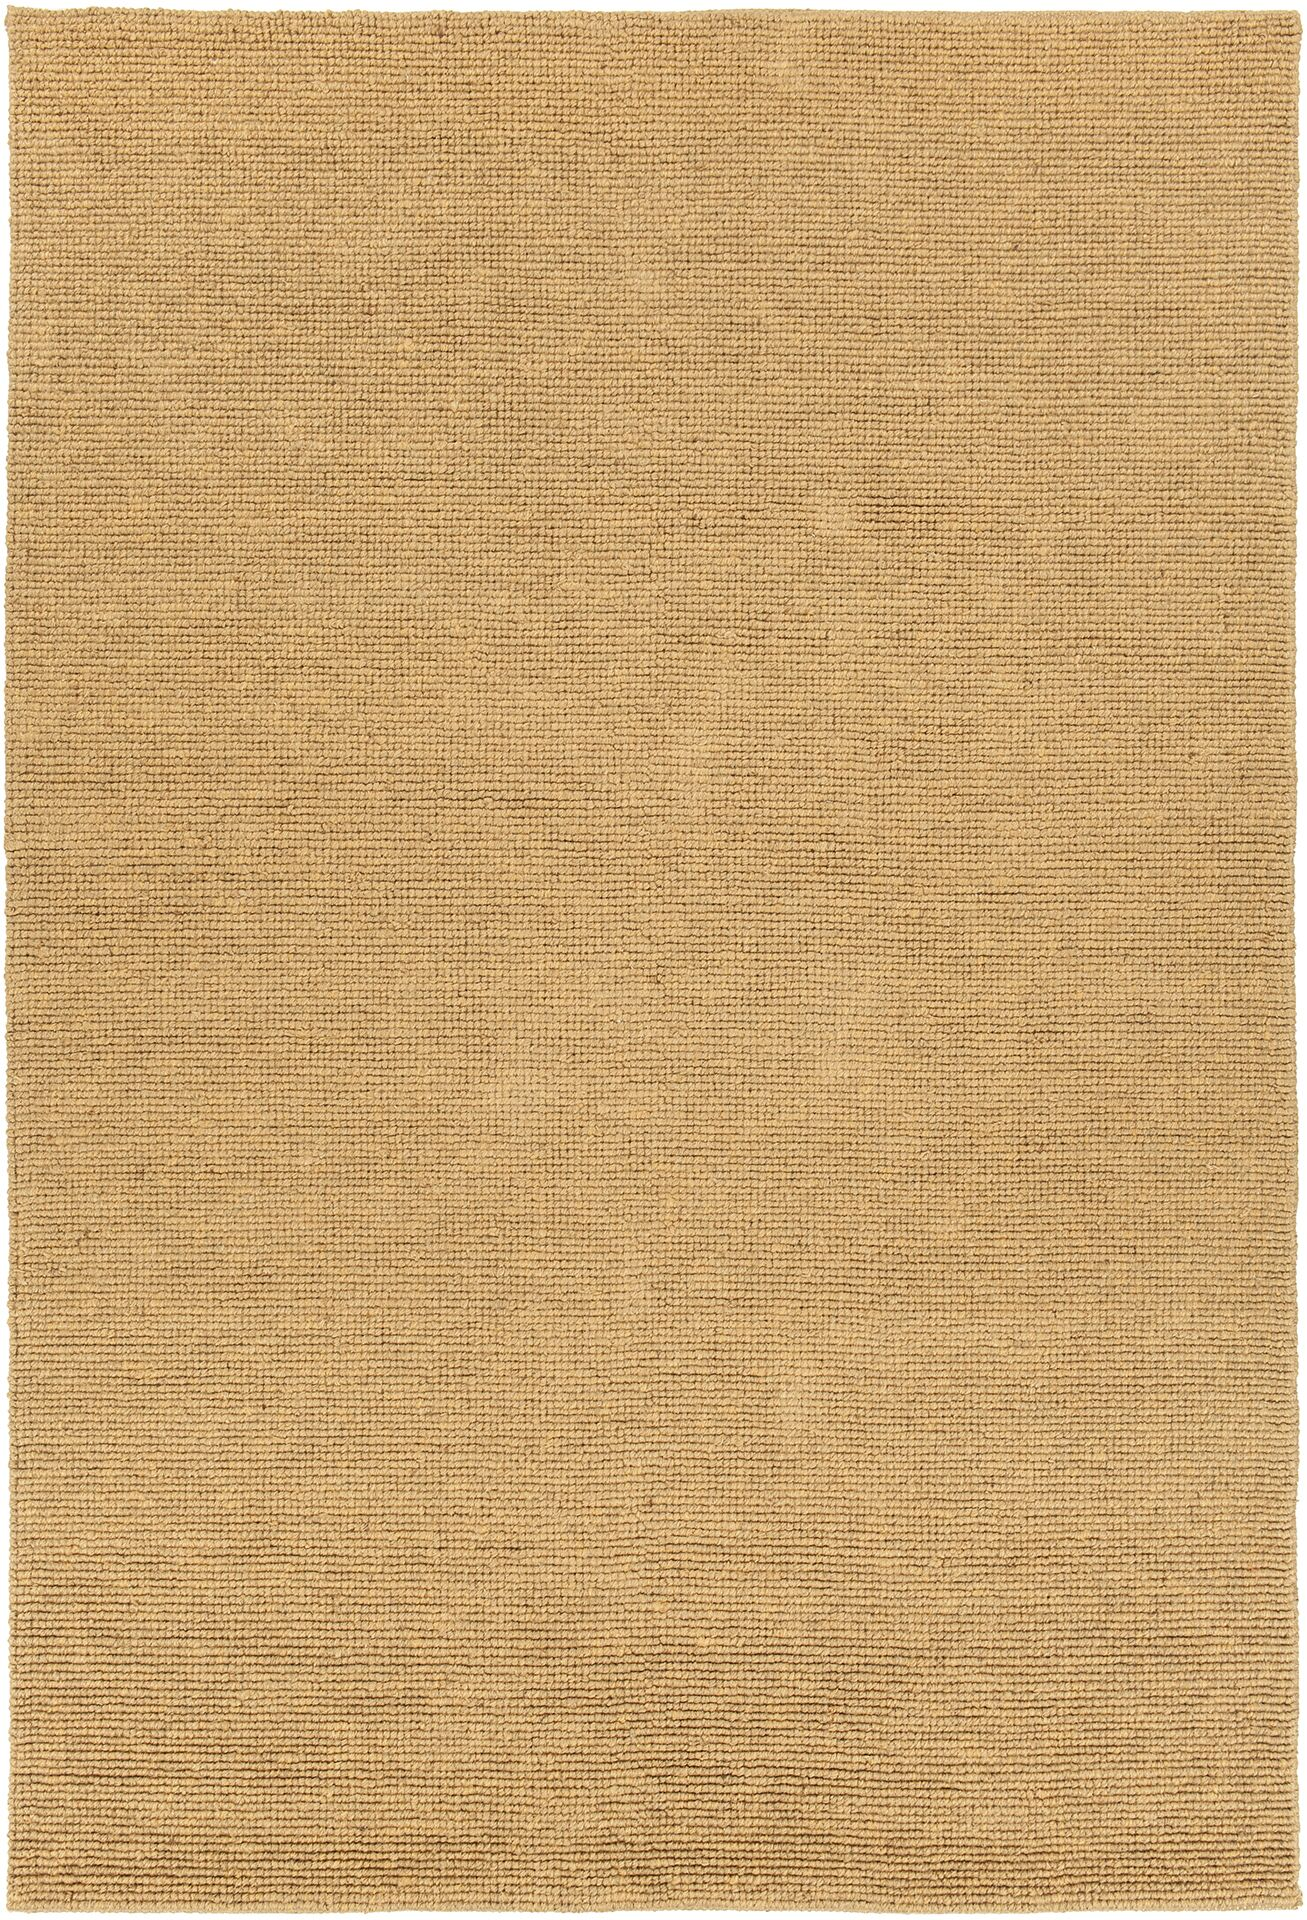 Amco Hand-Woven Gold Area Rug Rug Size: 7'9